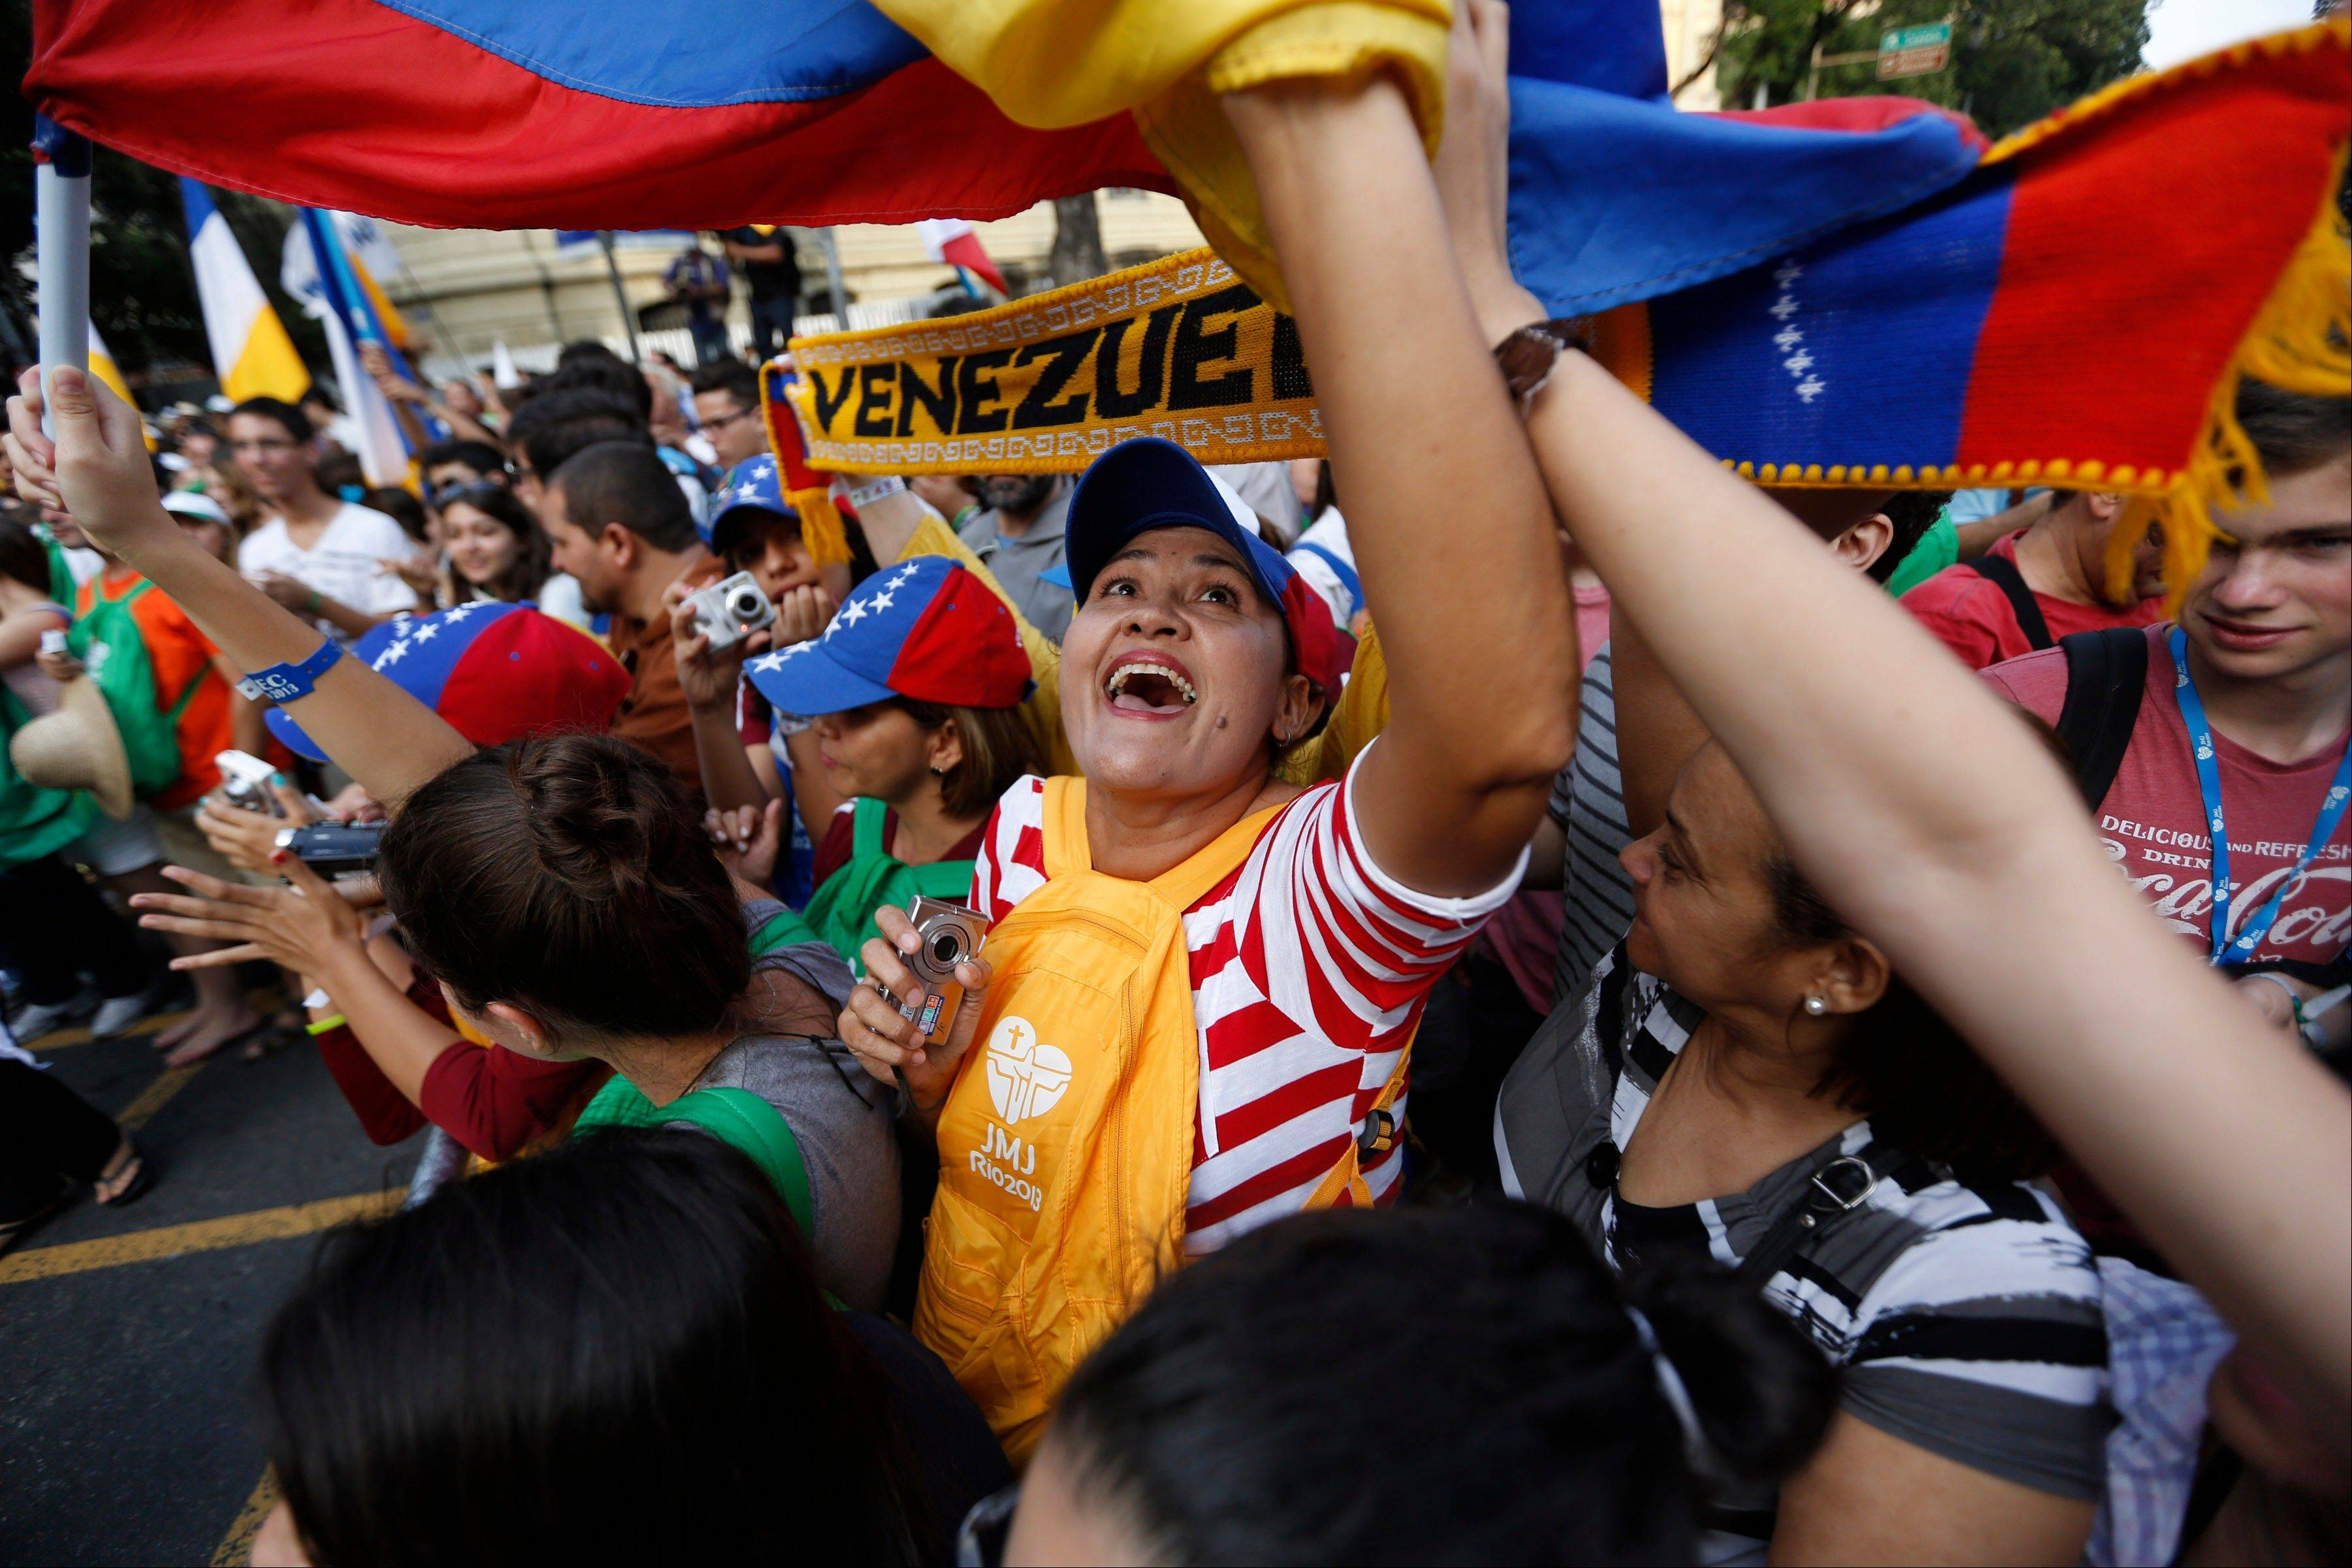 A Venezuelan waves her country's flag as she waits for the arrival of Pope Francis in Rio de Janeiro, Brazil, Monday, July 22, 2013. Frenzied crowds of Roman Catholics lined the streets to see Francis on Monday.